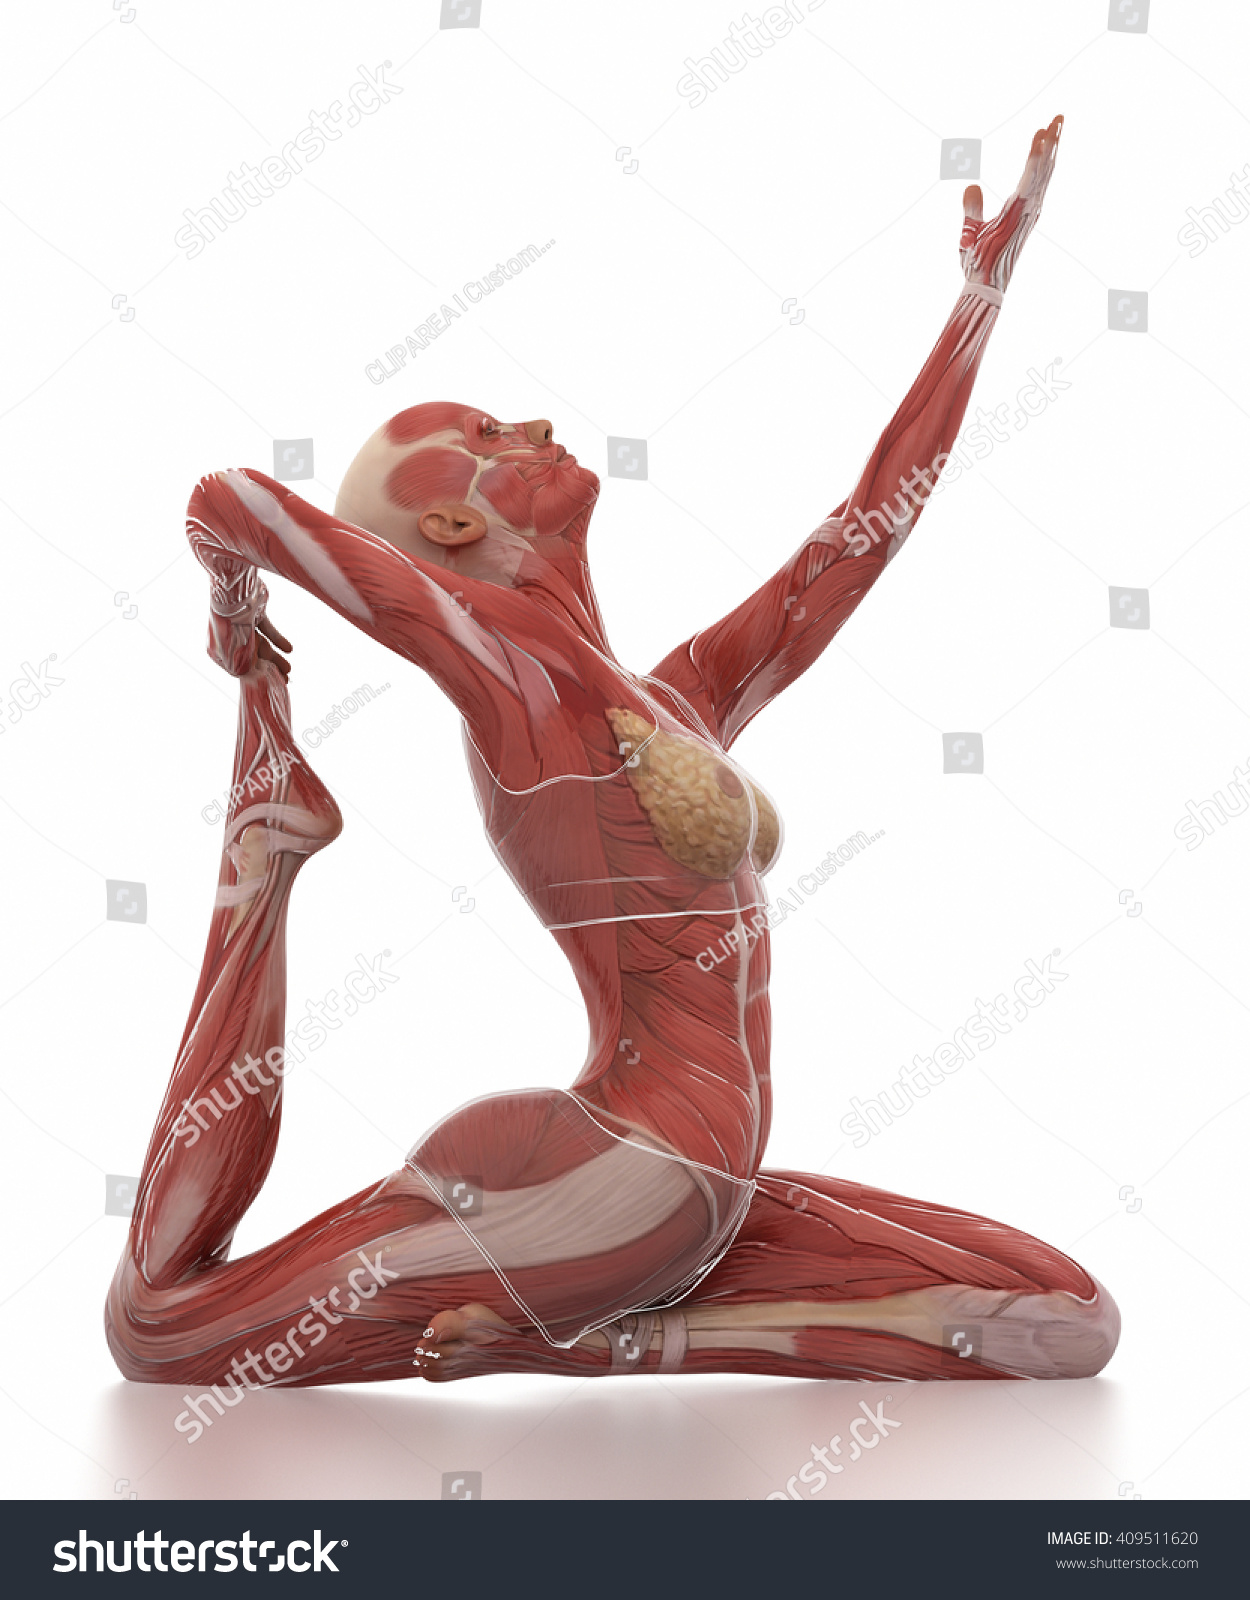 Anatomy Muscle YOGA White Isolated Stock Illustration 409511620 ...